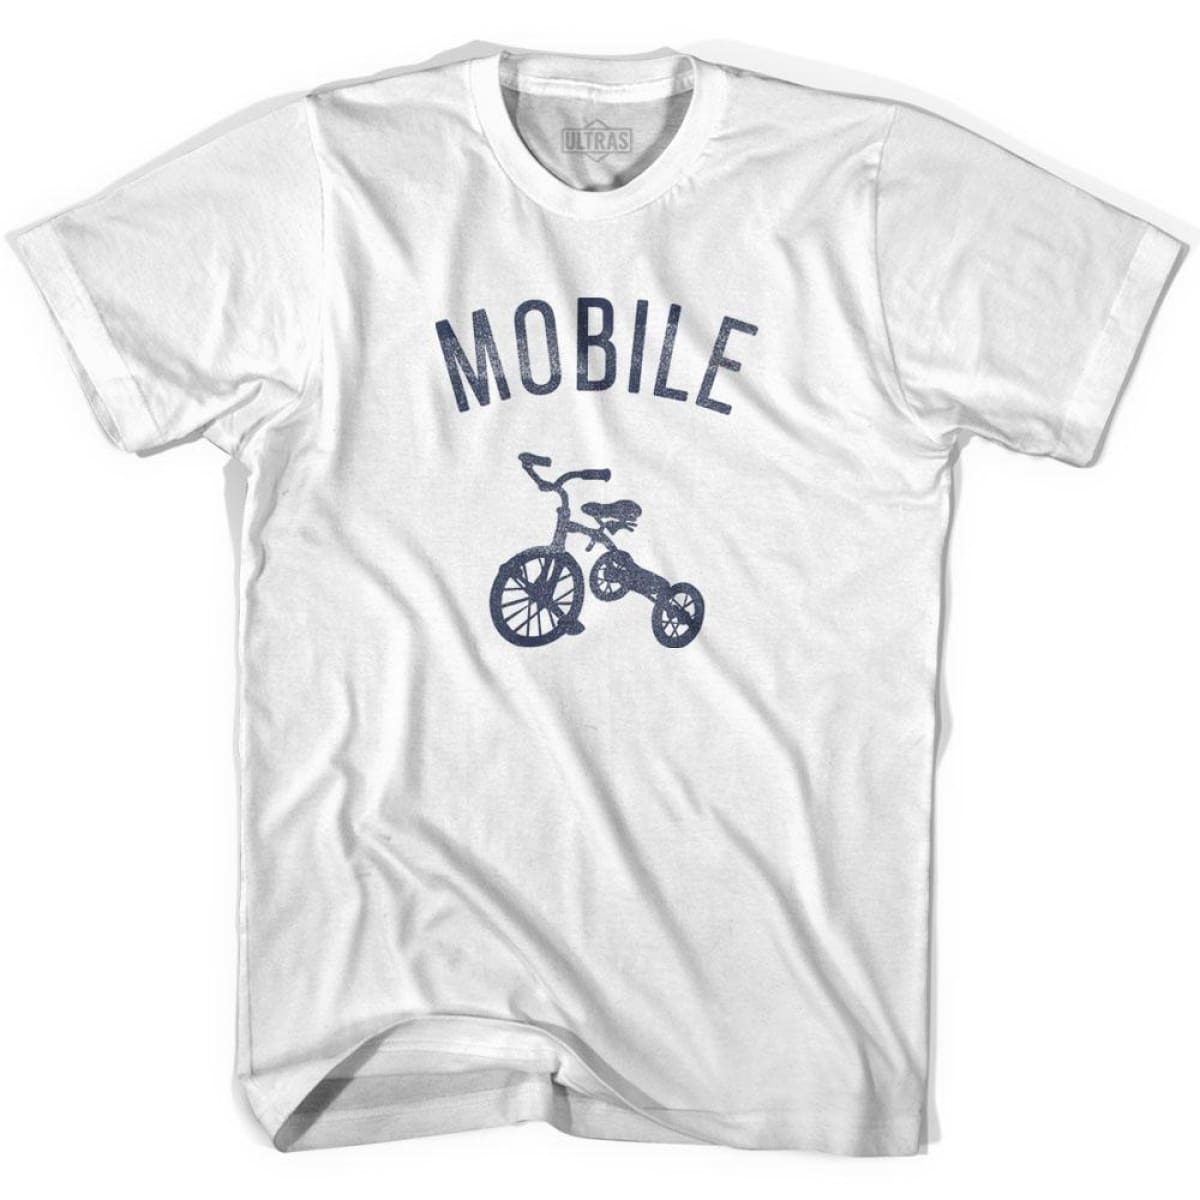 Mobile City Tricycle Youth Cotton T-shirt - Tricycle City